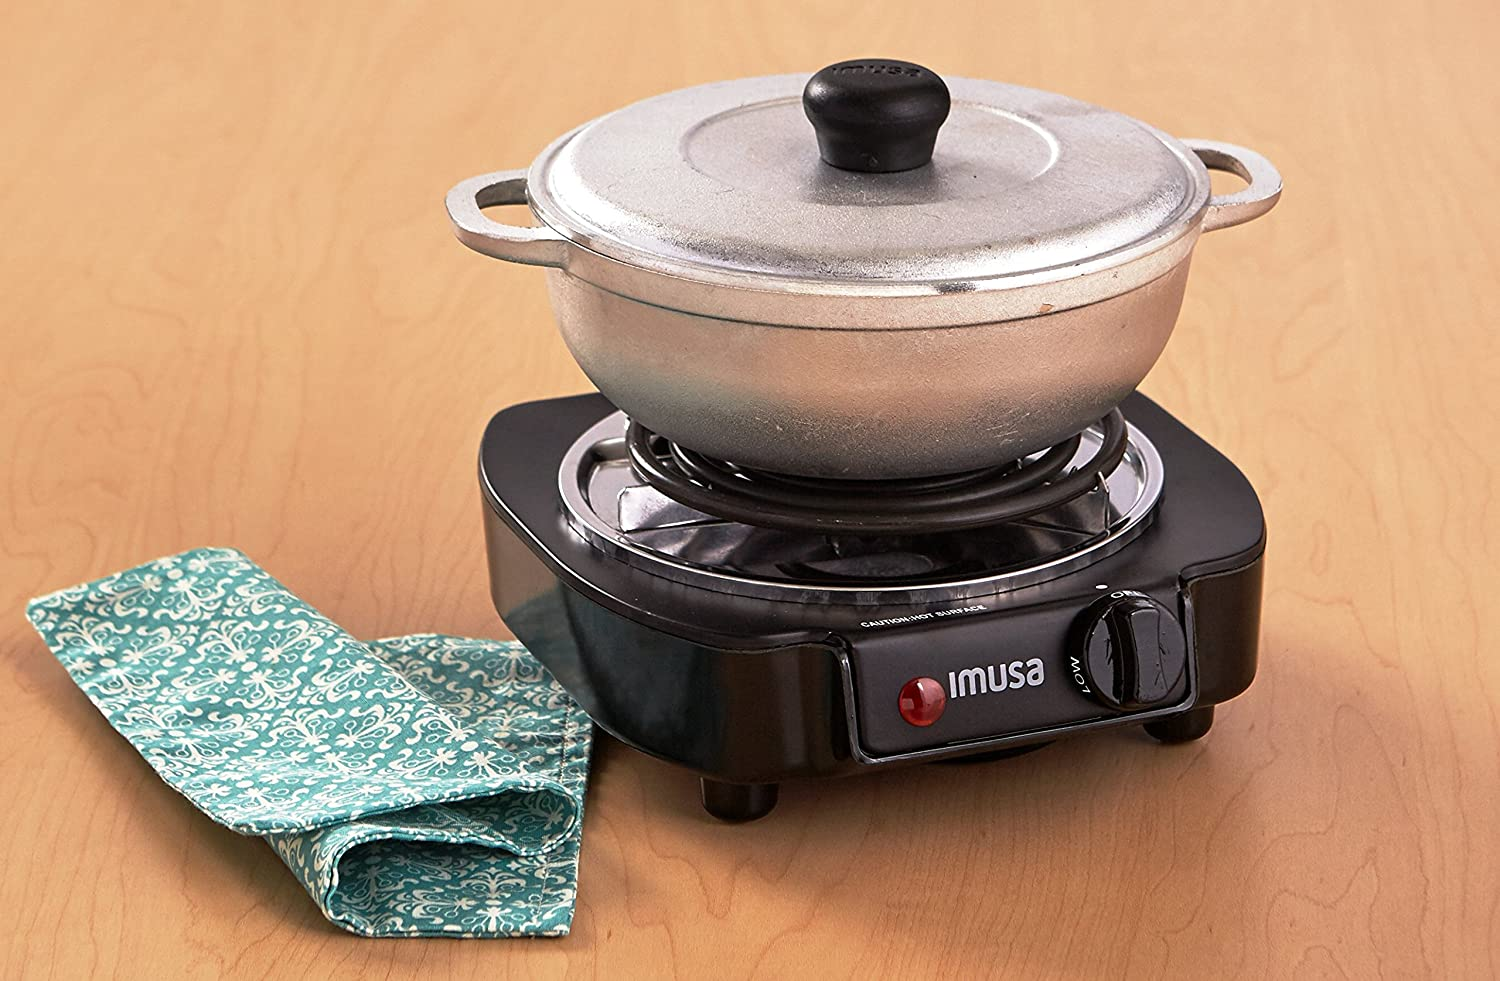 Best Portable Electric Stove for Camping